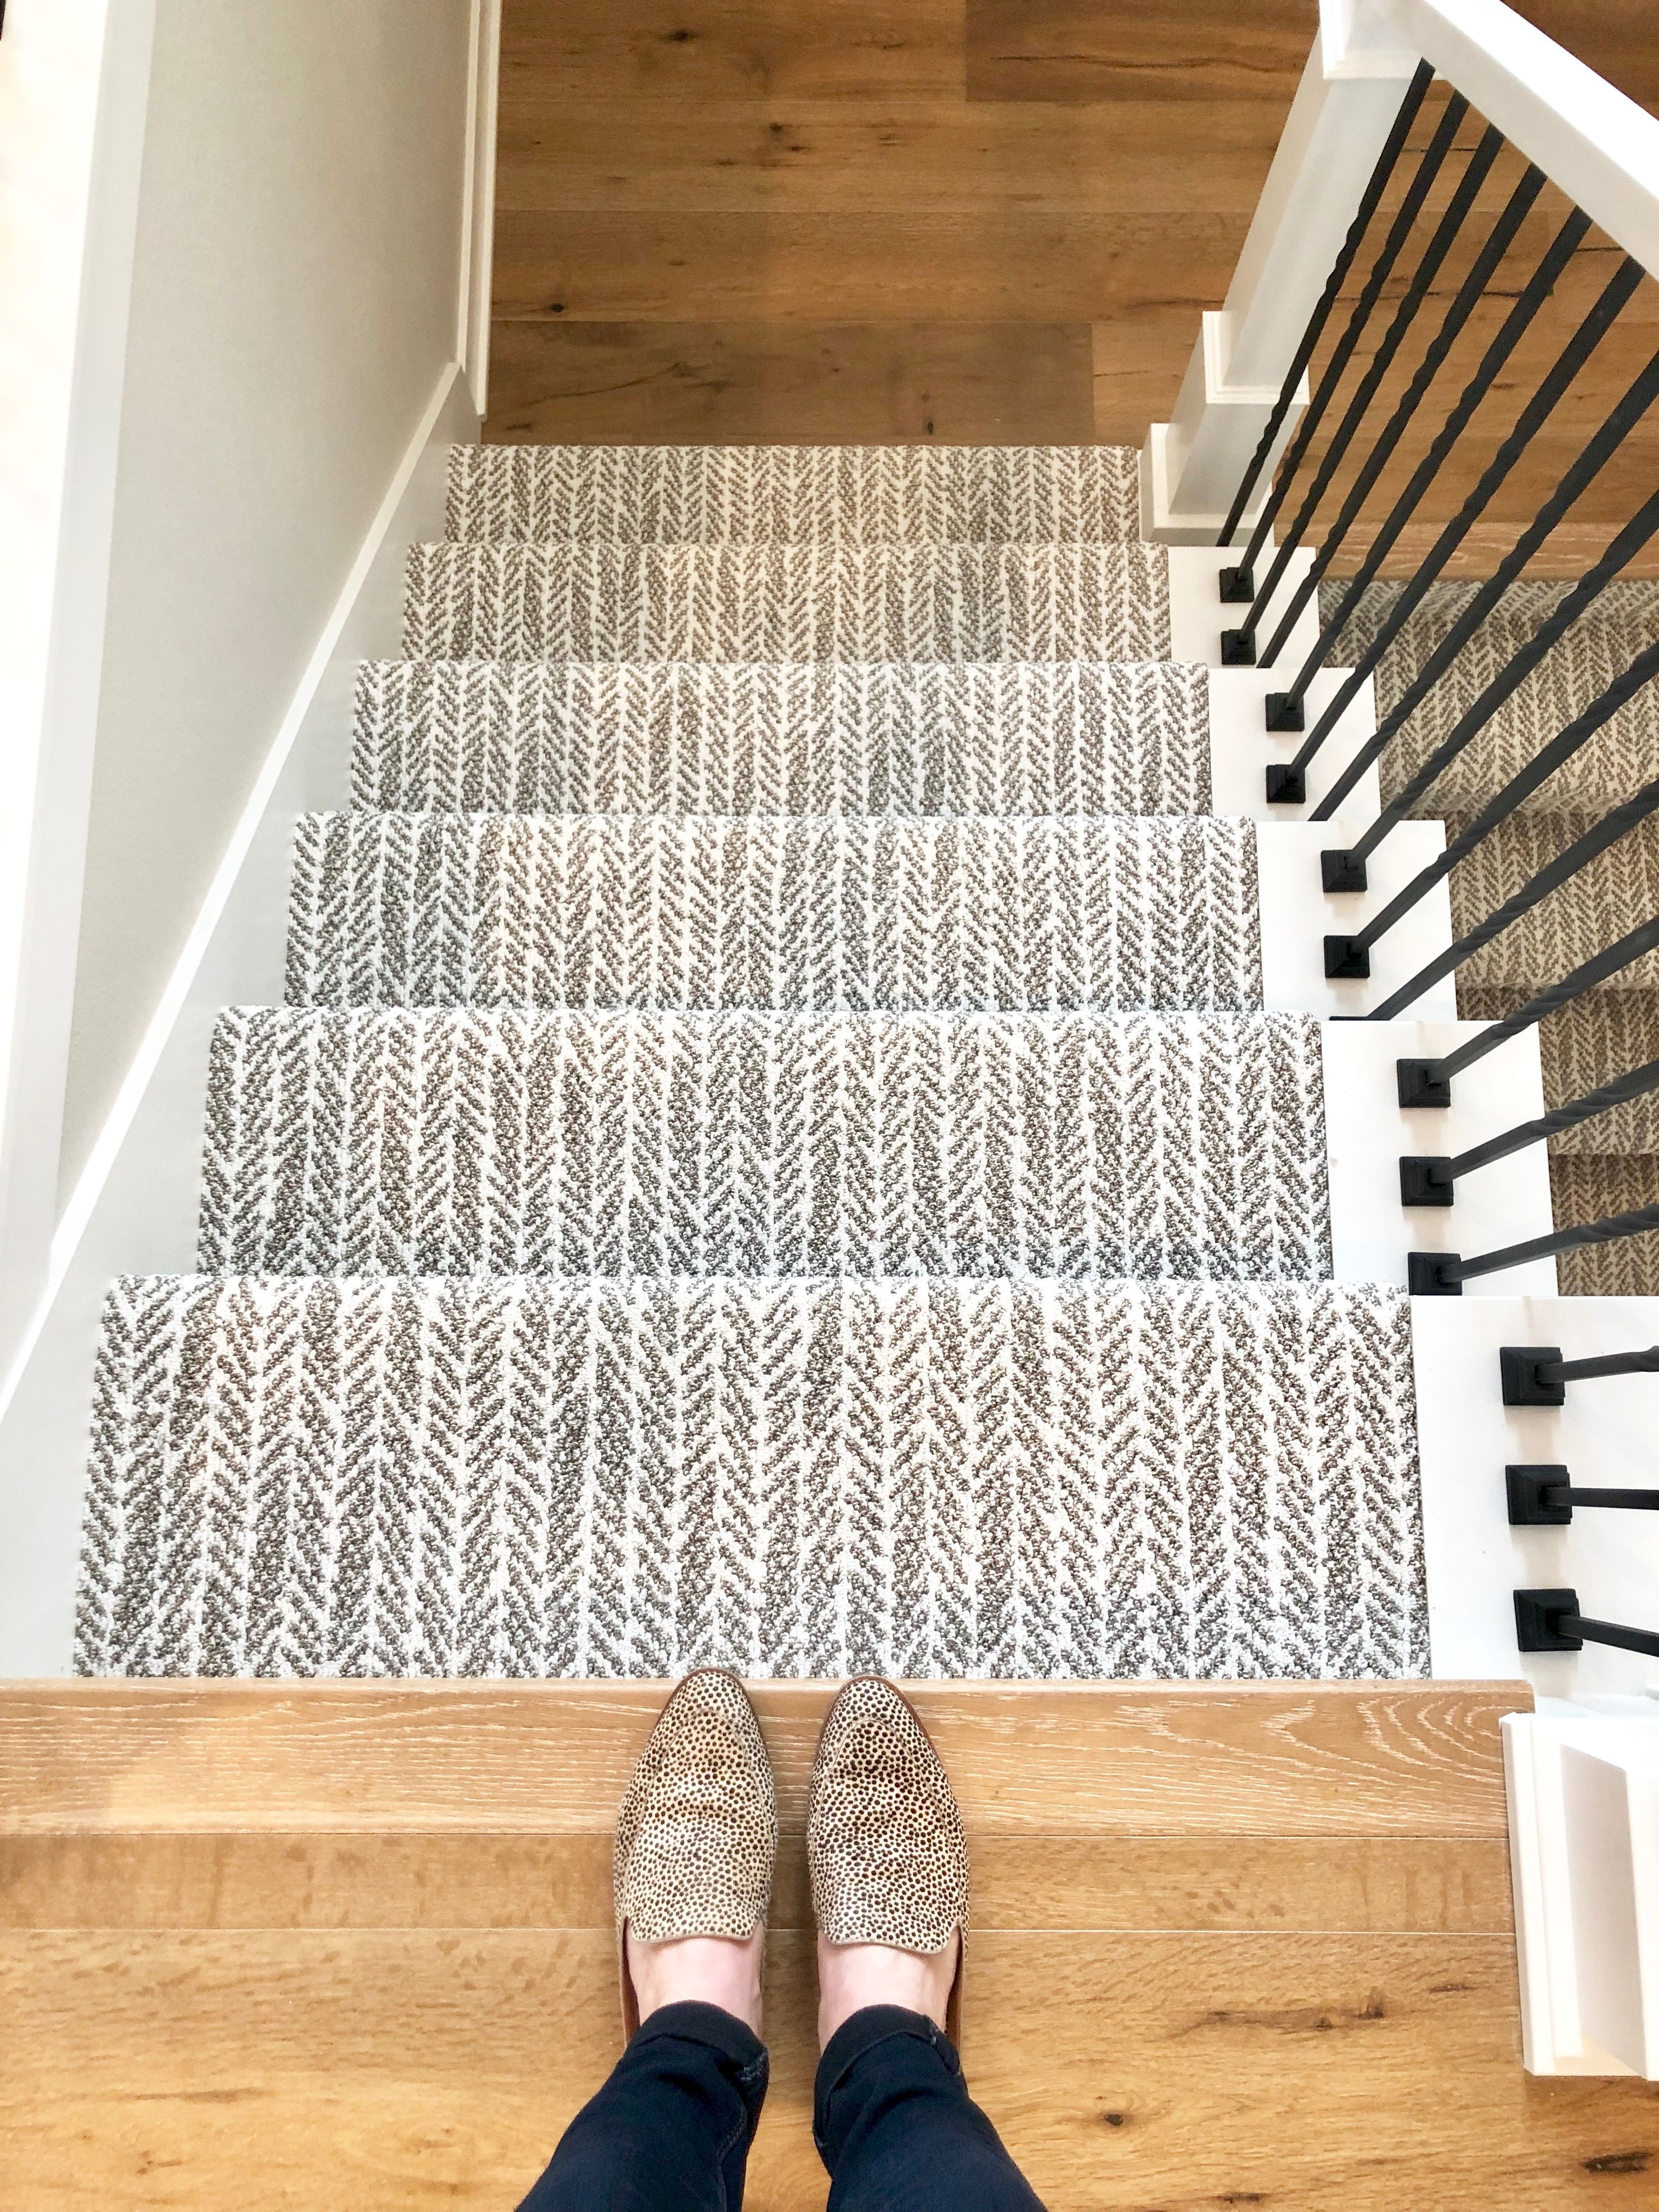 Shaw Lead The Way Super Fine Carpet E Lynndesign And Happehomes Patterned Stair Carpet Carpet Stairs Patterned Carpet